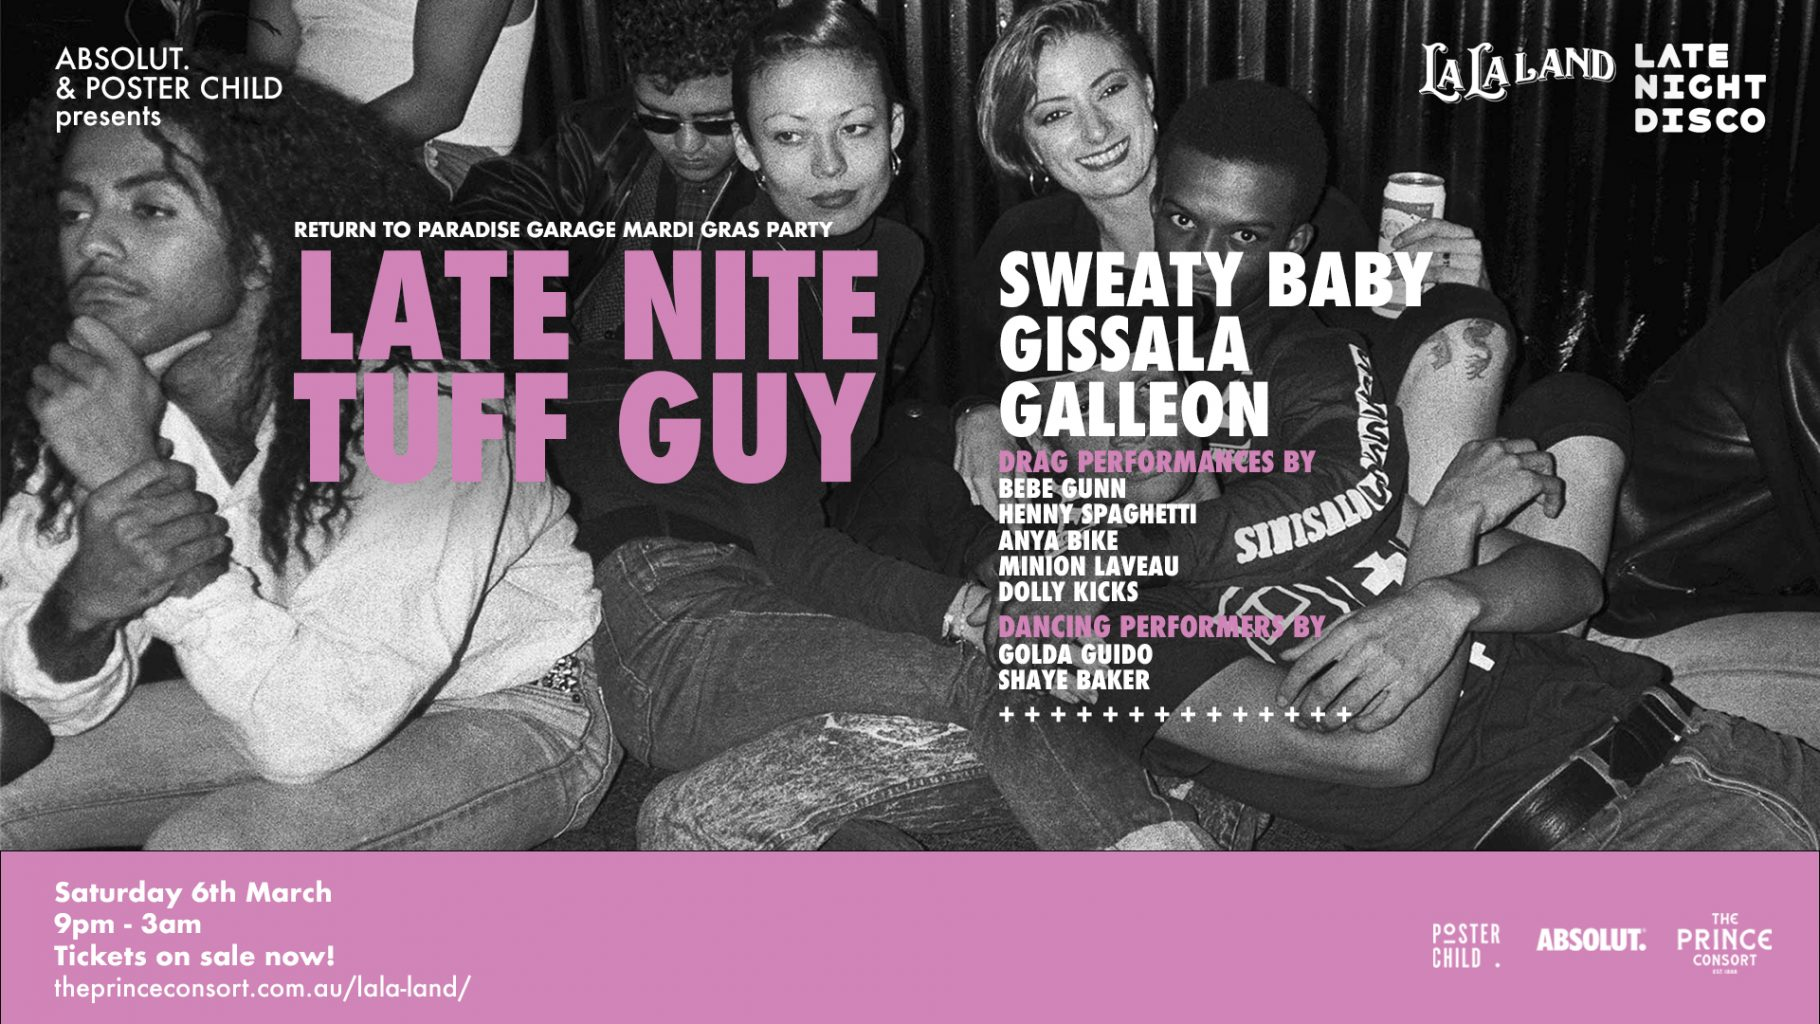 ABSOLUT.  & POSTER CHILD PRESENT LATE NITE TUFF GUY